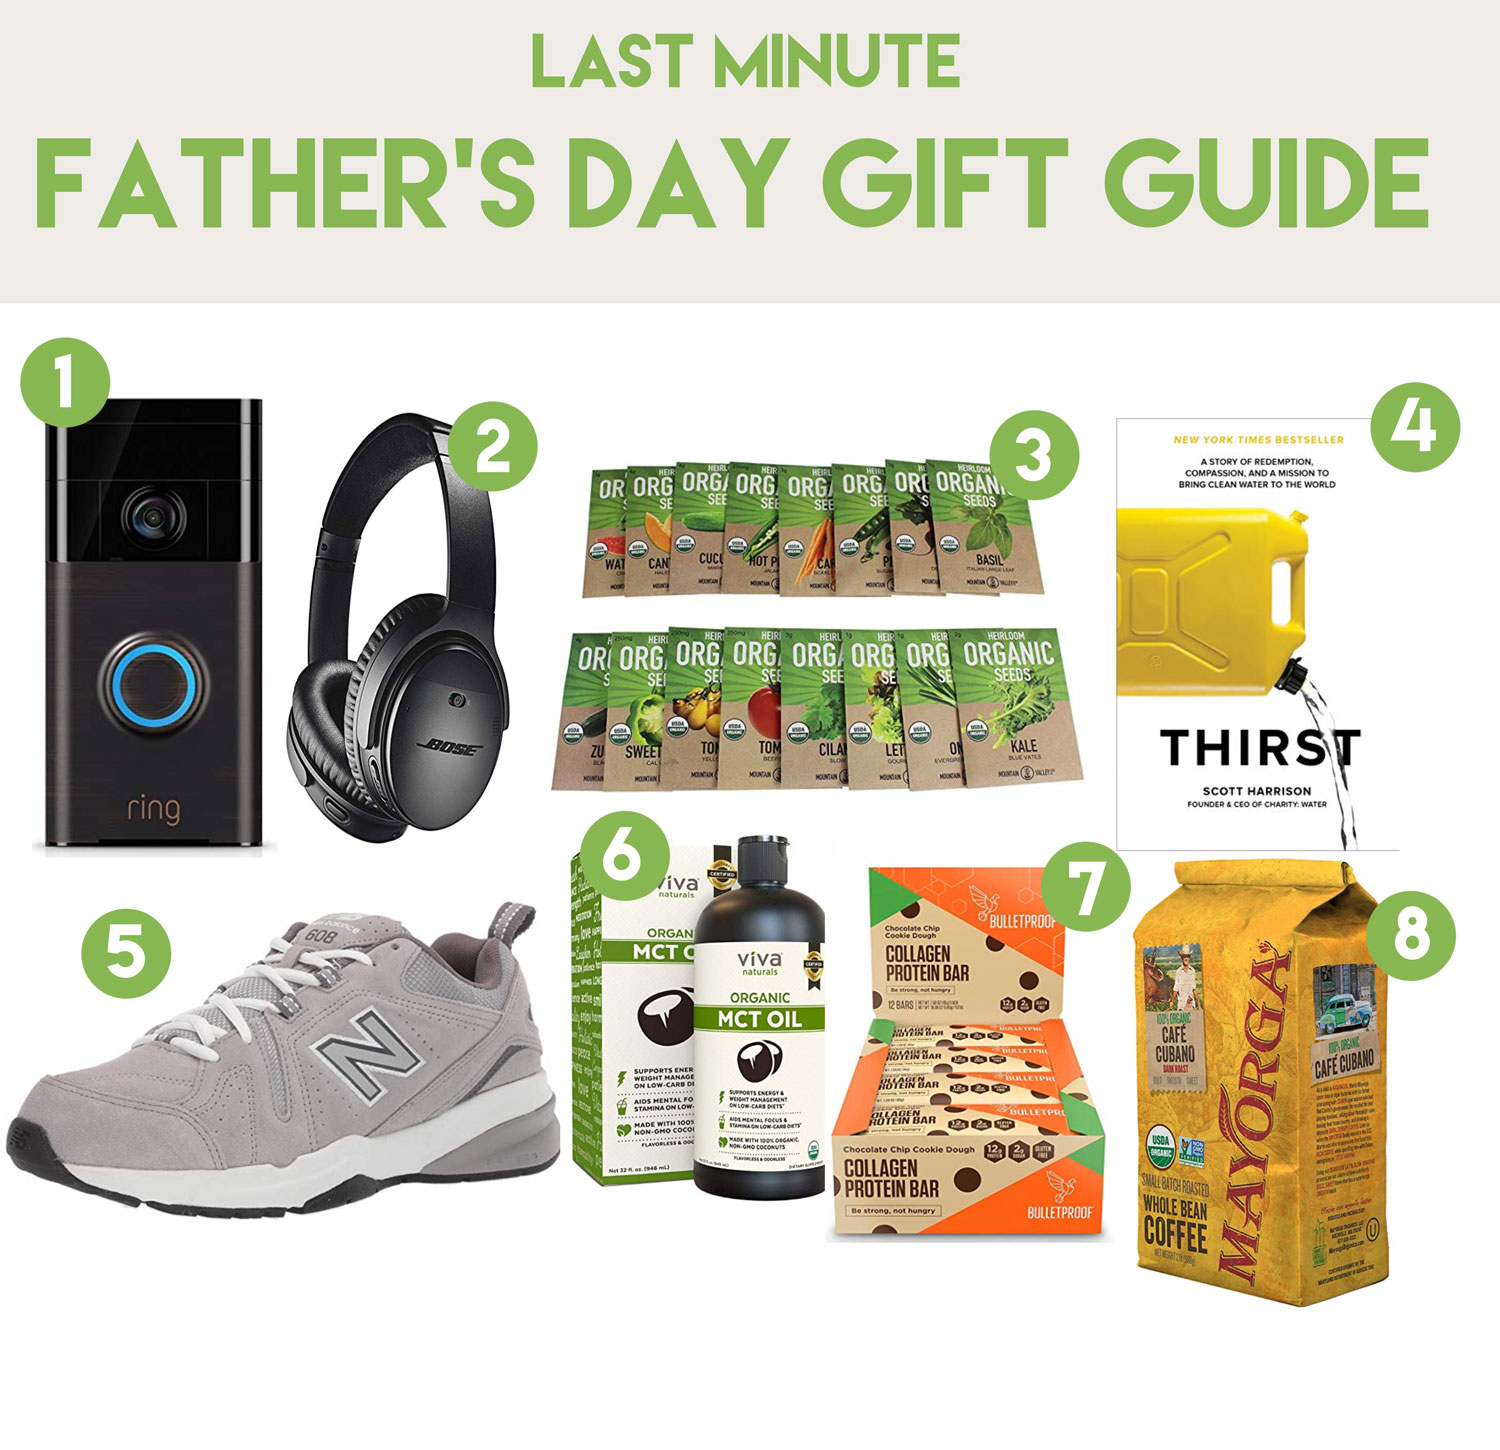 fathers-day-gift-guide.jpg